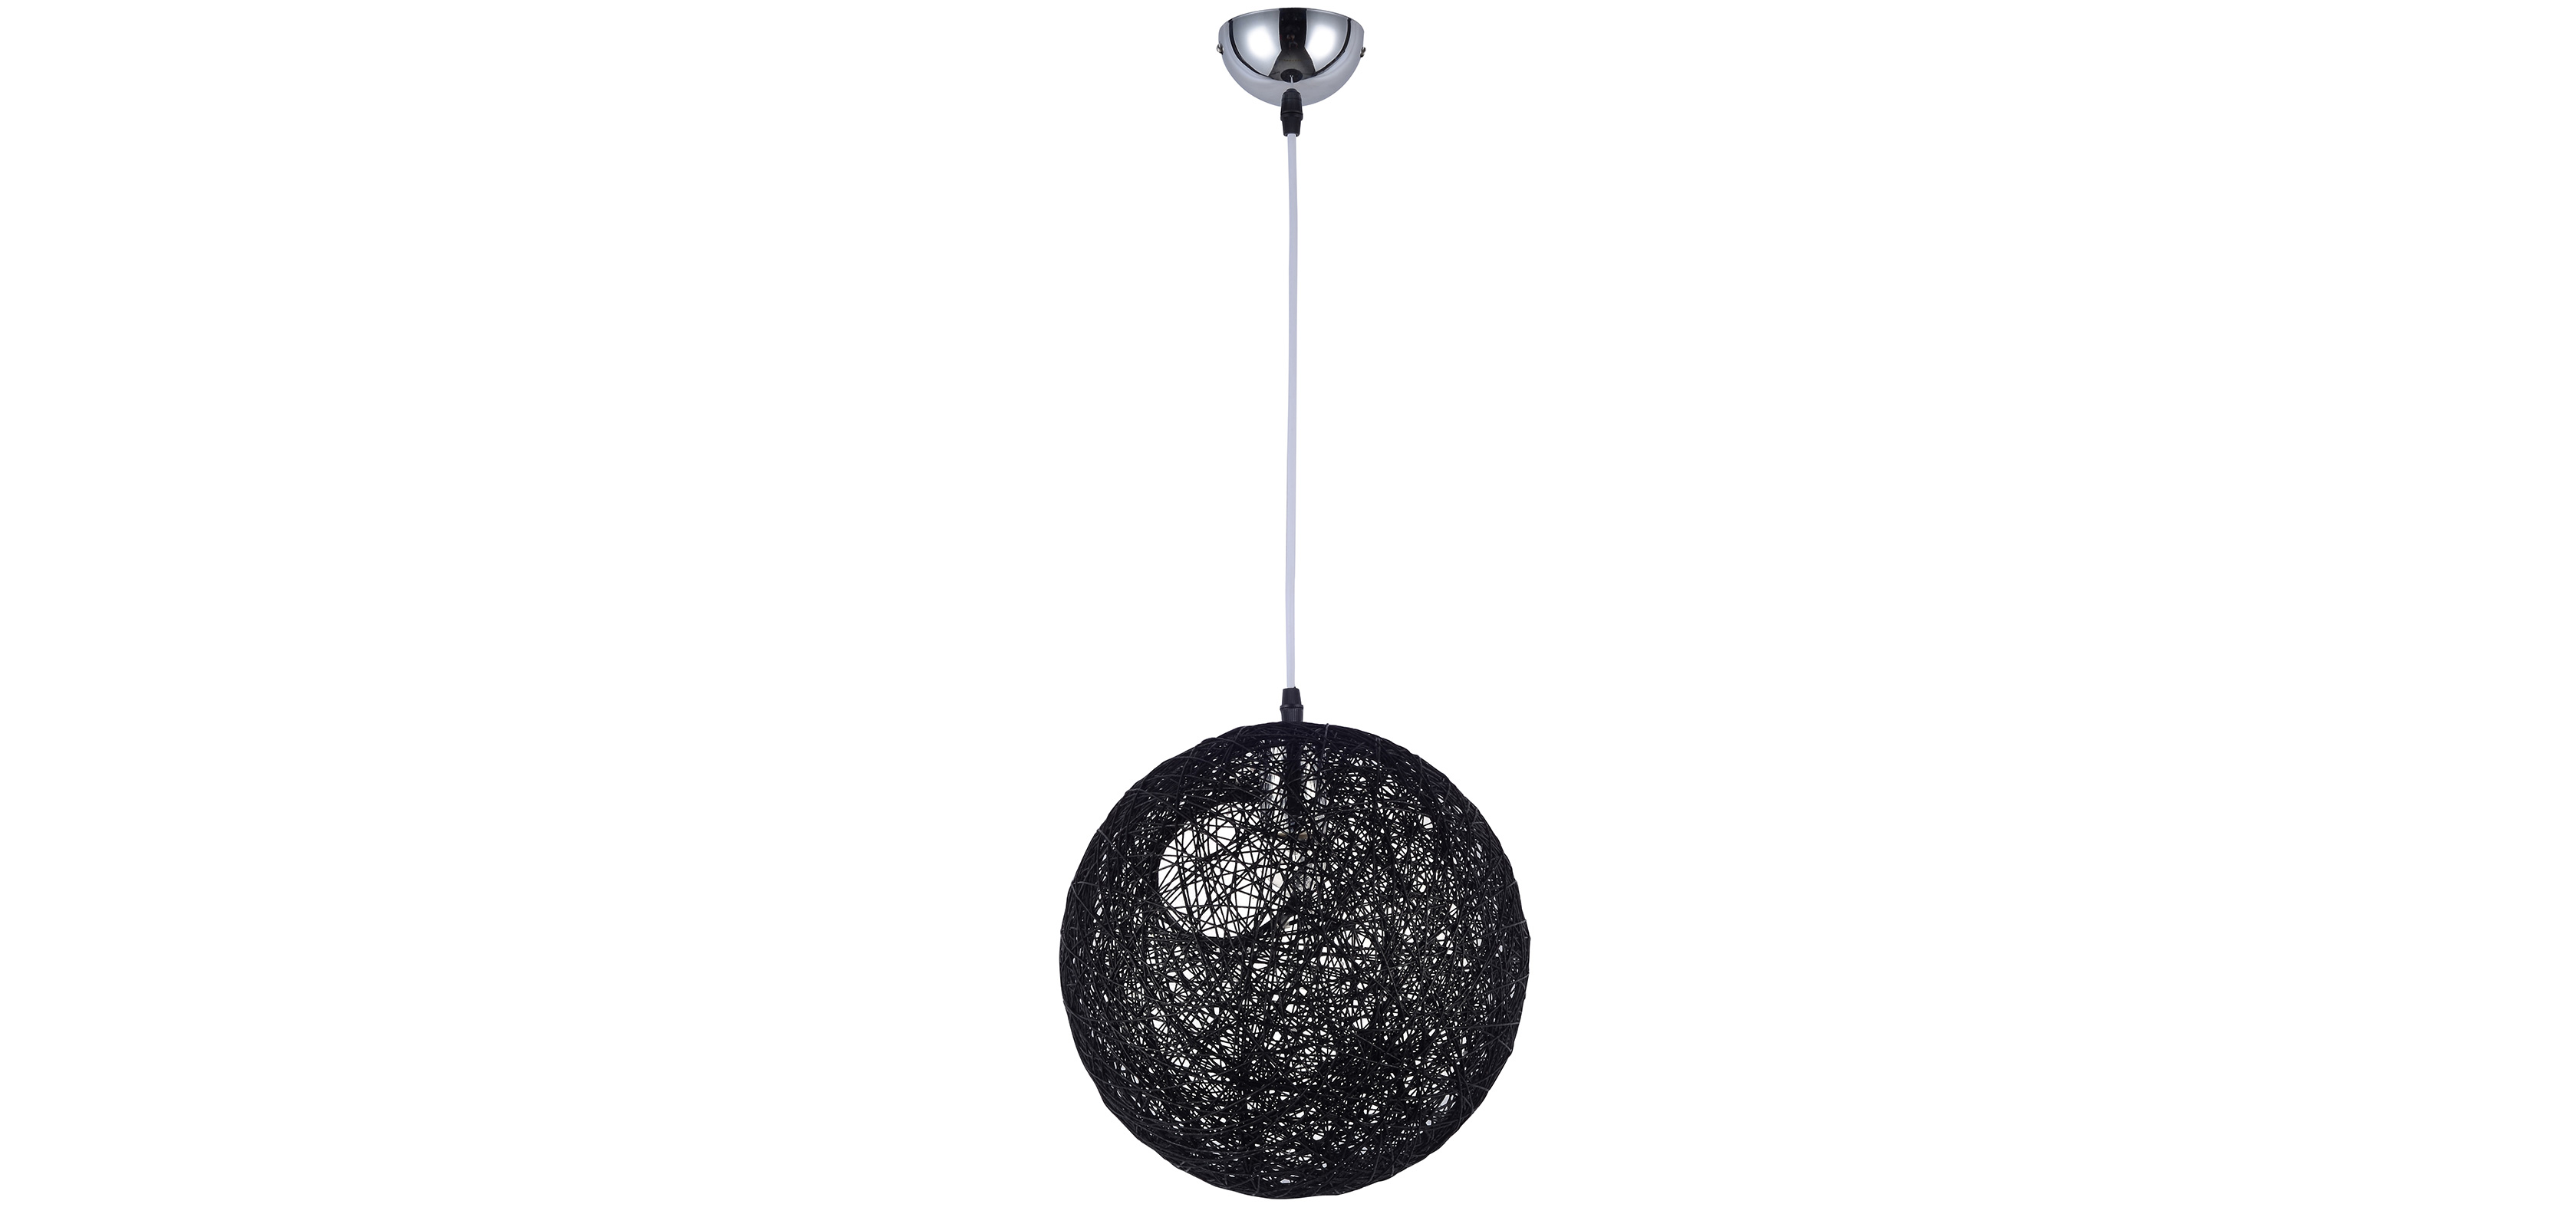 lampe suspension boule al atoire 60 corde style pot bertjan pas cher. Black Bedroom Furniture Sets. Home Design Ideas